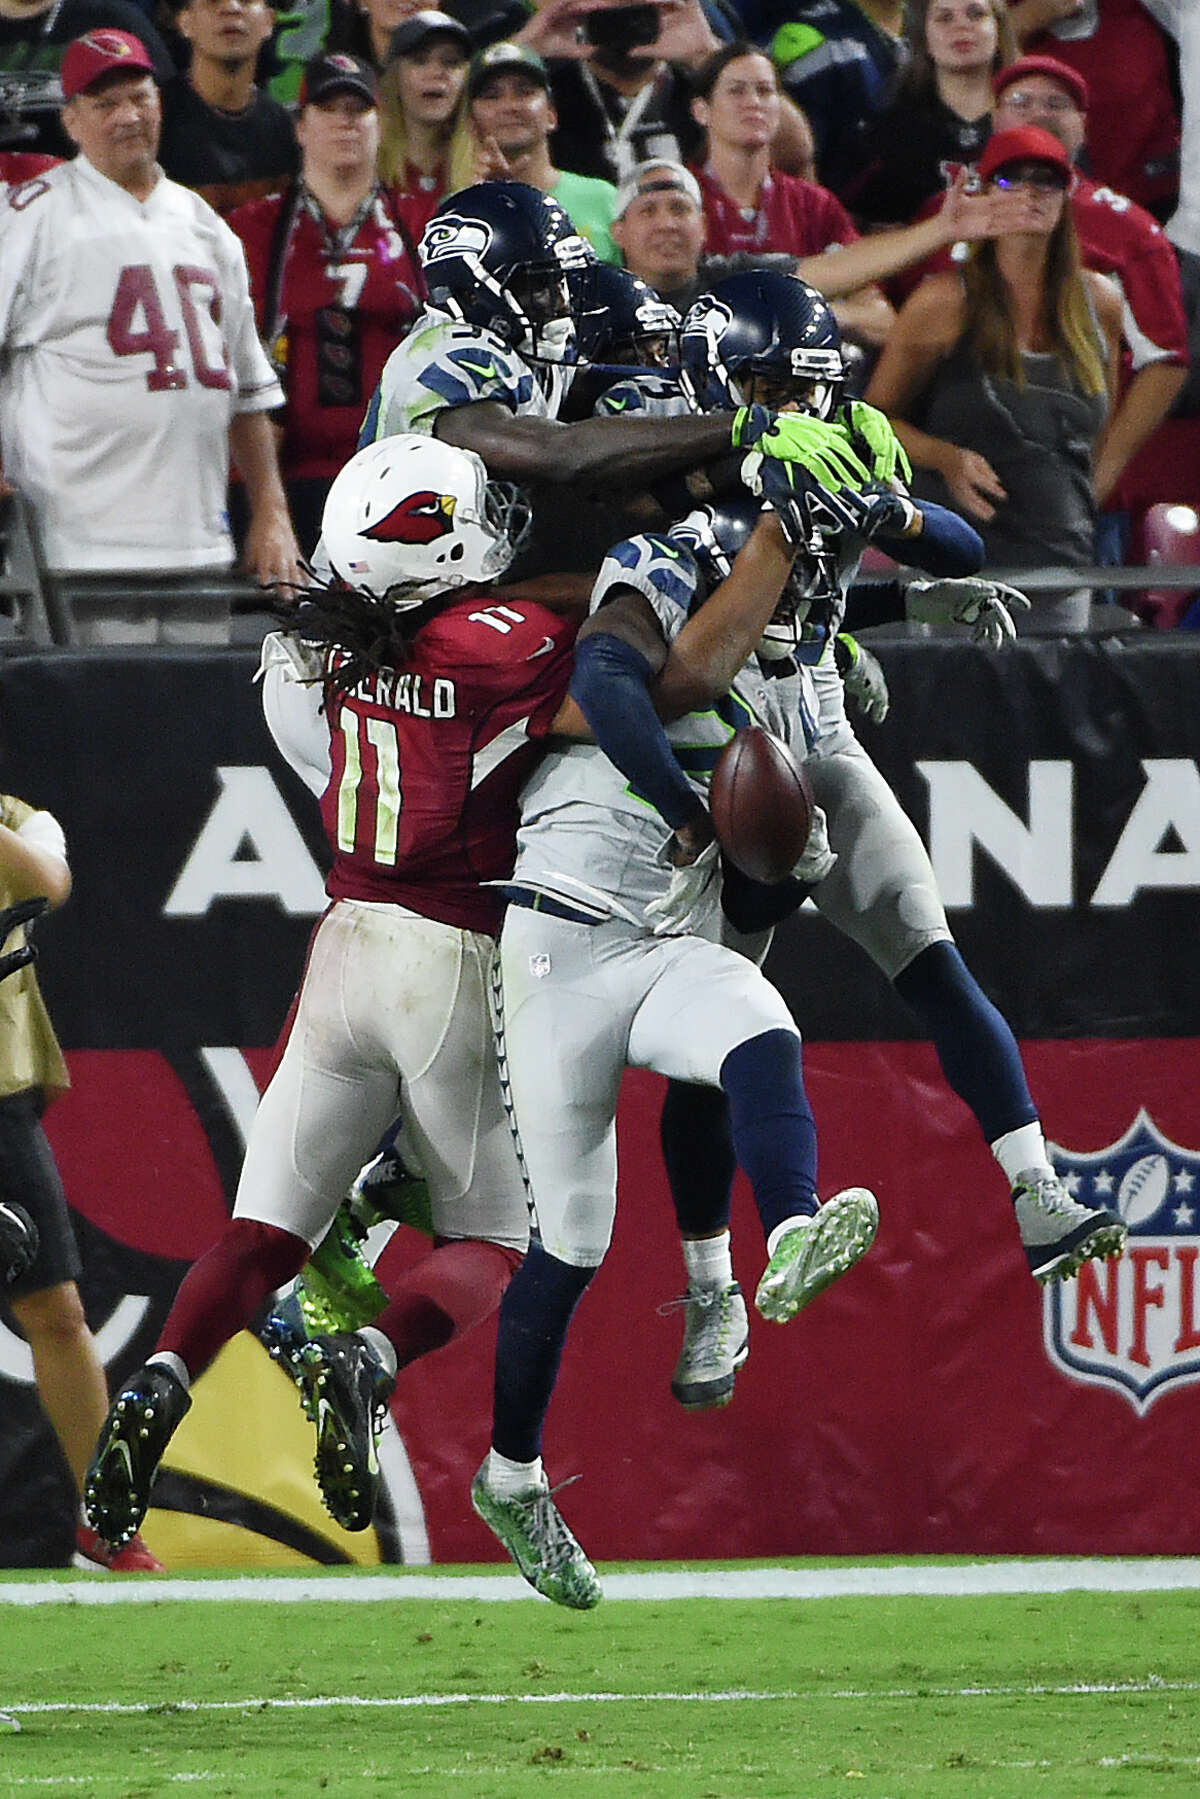 Larry Fitzgerald of the Arizona Cardinals battles for the ball with Jeremy Lane, Earl Thomas and Kelcie McCray of the Seattle Seahawks during the final seconds of overtime at University of Phoenix Stadium on October 23, 2016 in Glendale, Arizona. (Photo by Norm Hall/Getty Images)